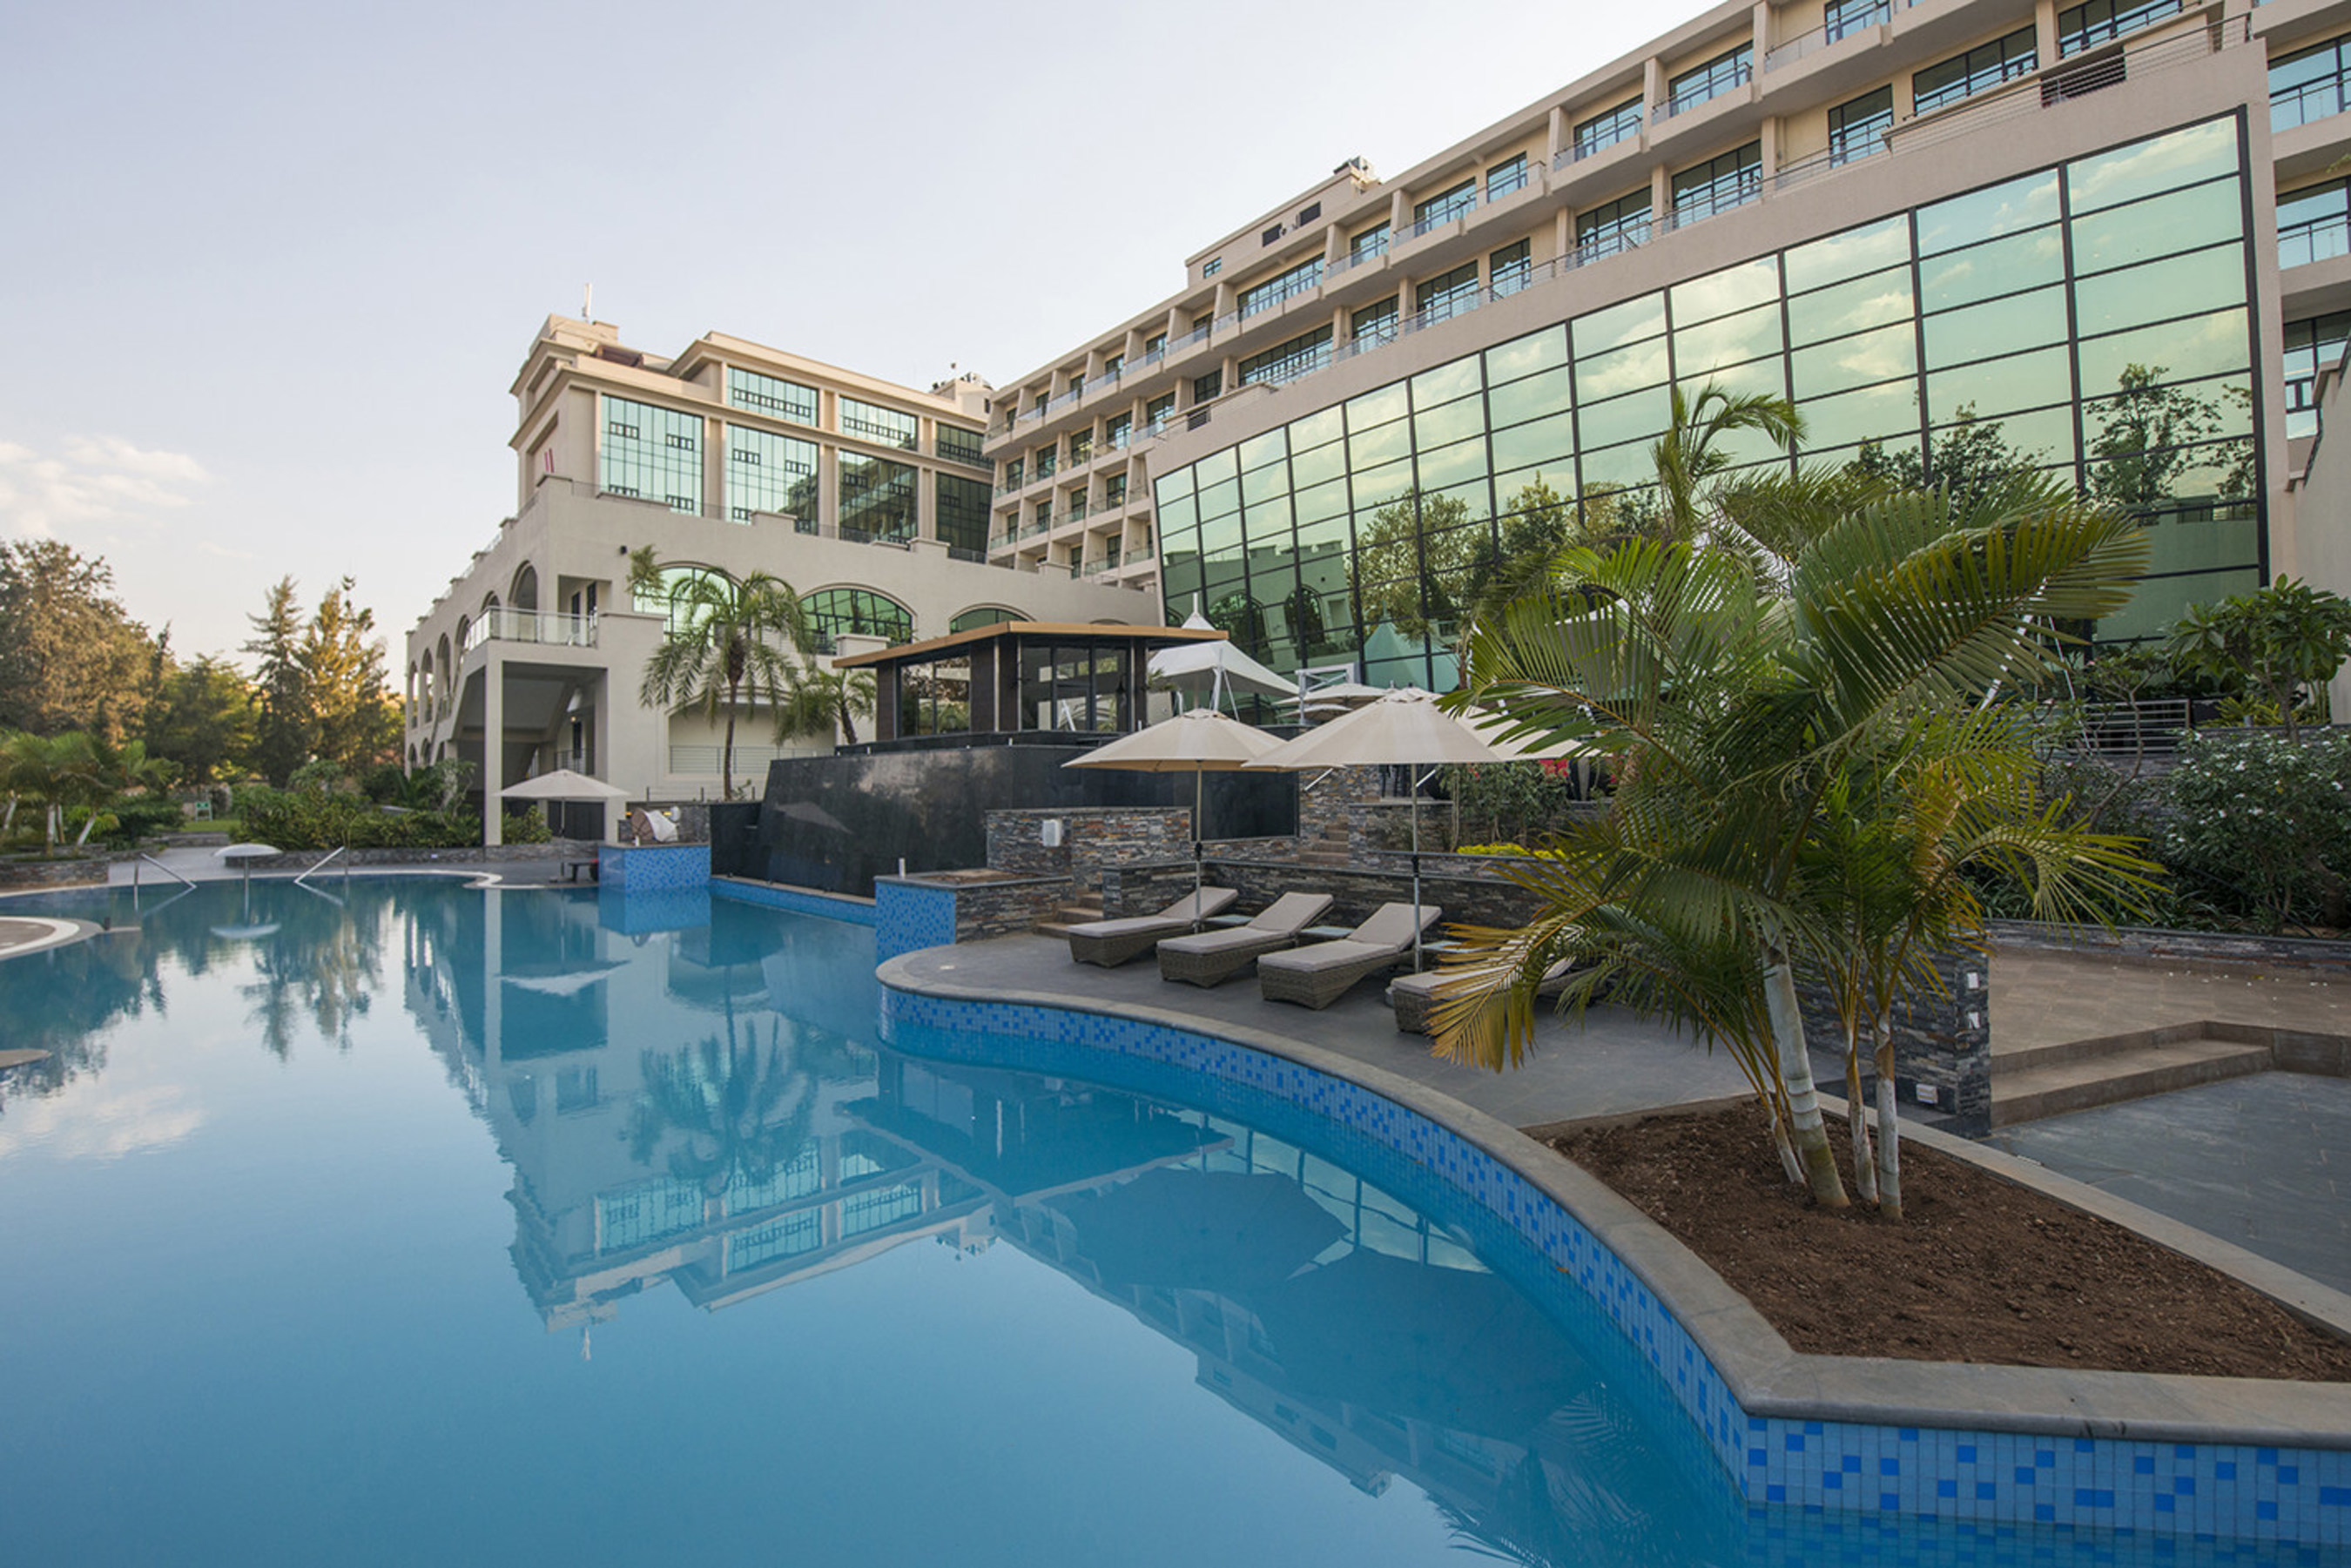 The Kigali Marriott Hotel,  the first Marriott Hotel in Rwanda, officially opened its door.